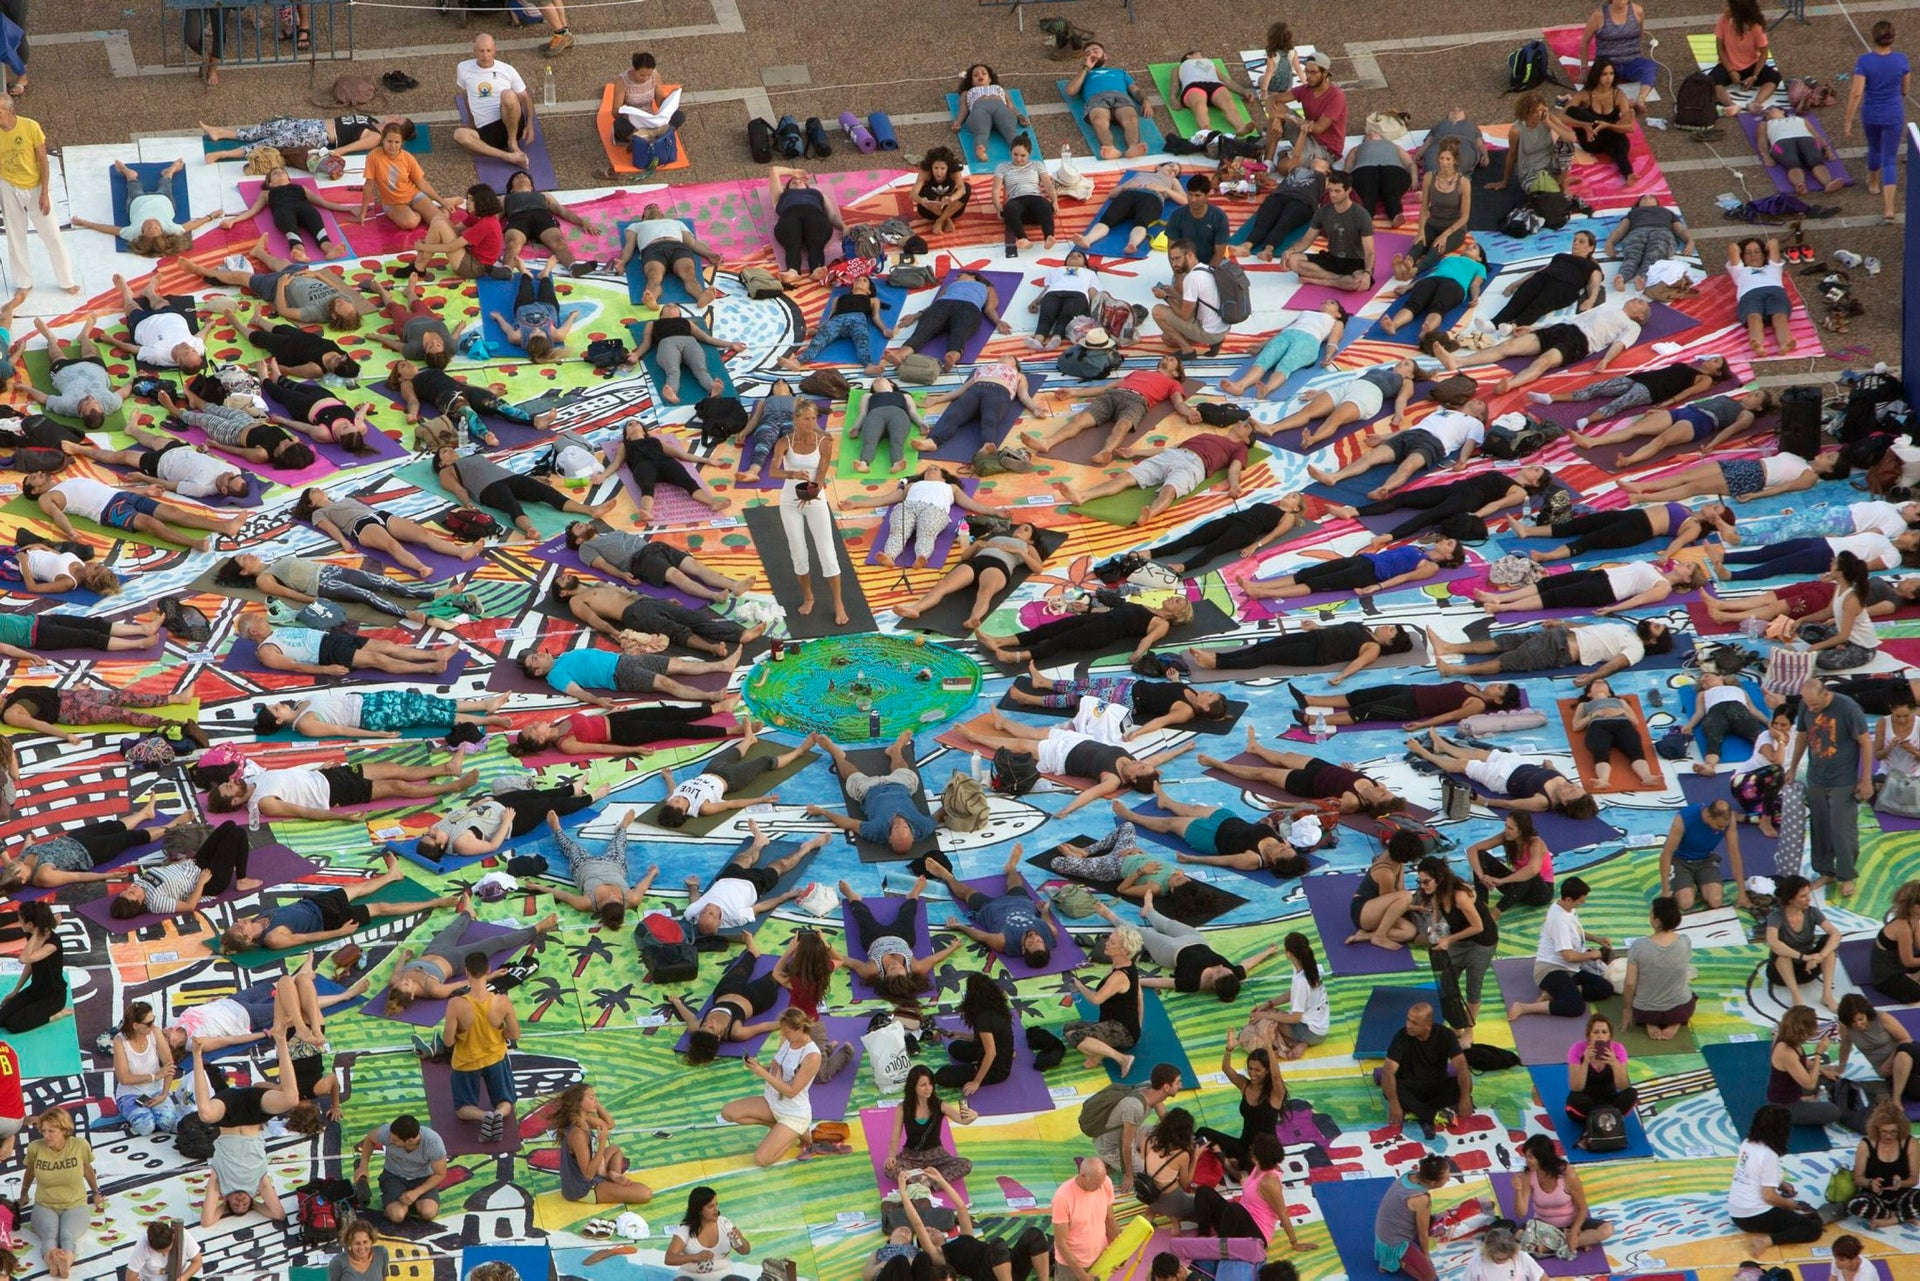 Israelis practice yoga during the International Yoga Day at the Rabin square in Tel Aviv, Israel, Wednesday, June 21, 2017.